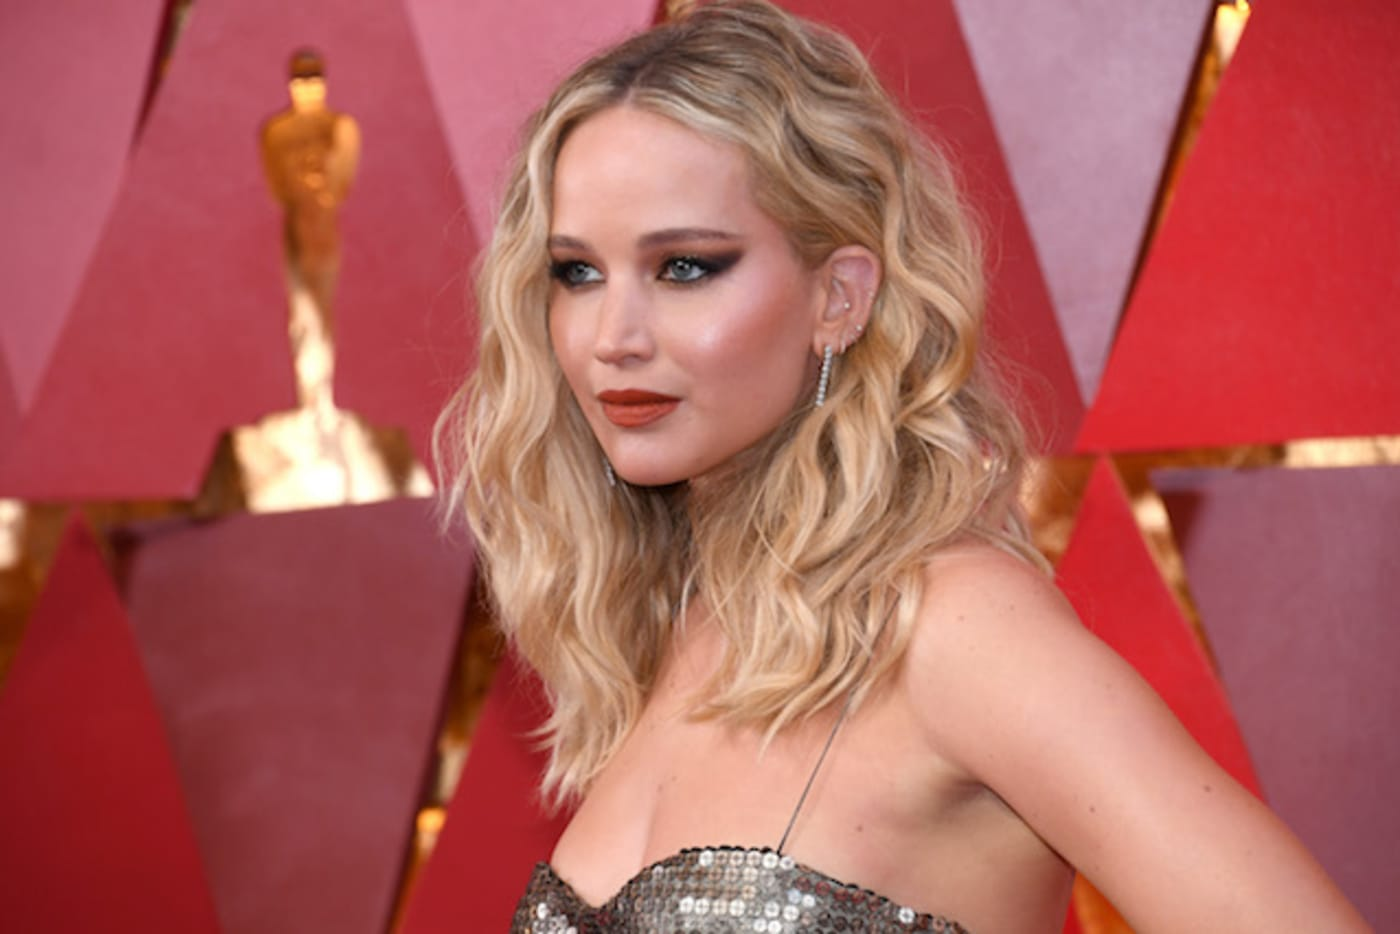 This is a picture of Jennifer Lawrence.